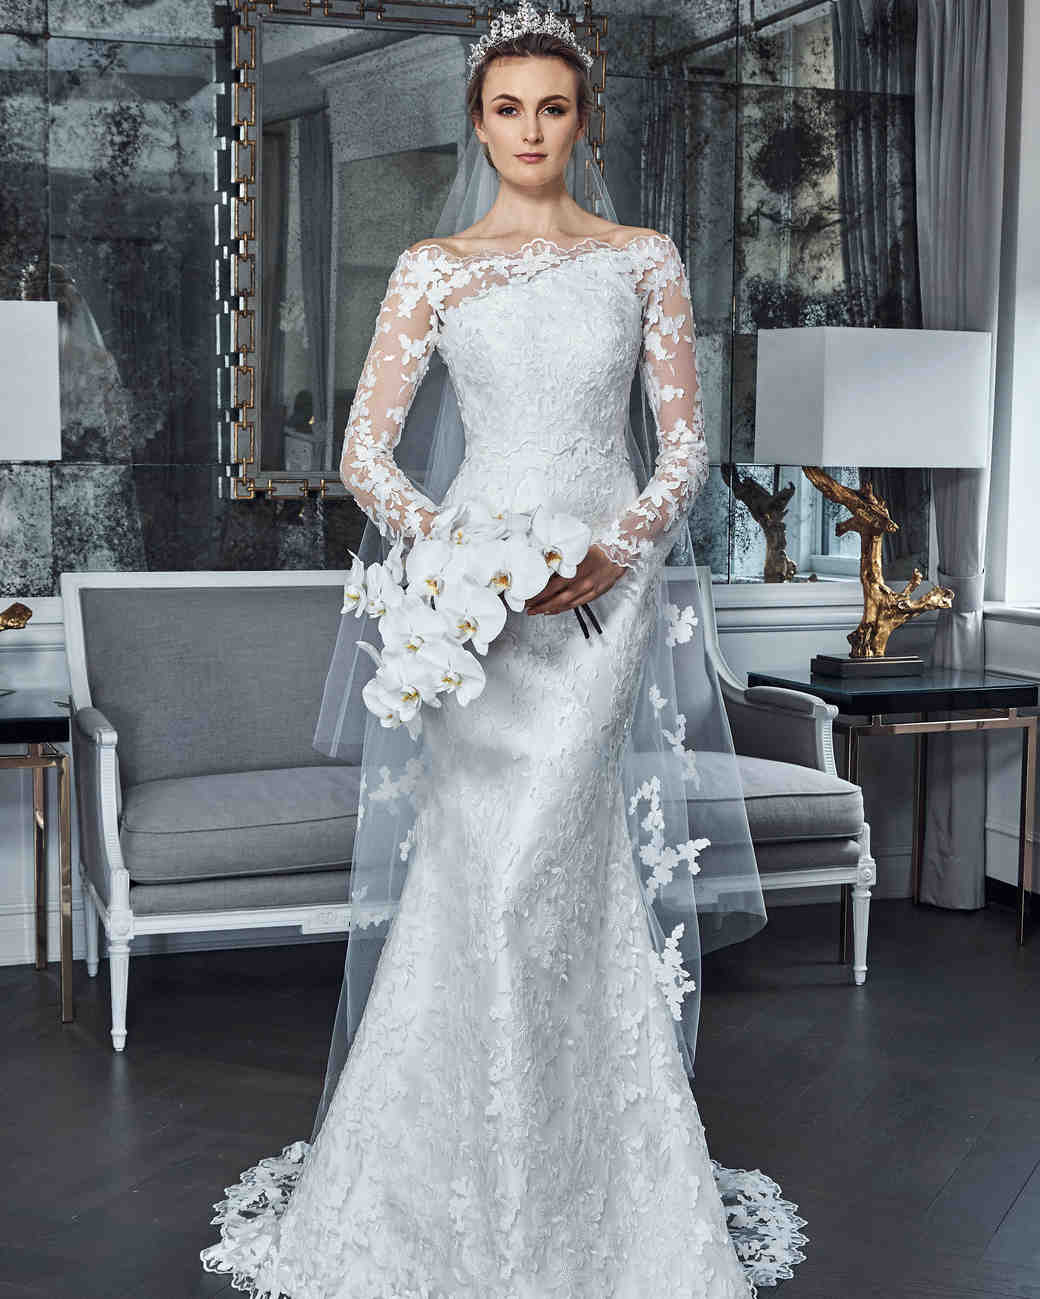 Bridal Dresses 2019: Romona Keveza Spring 2019 Wedding Dress Collection